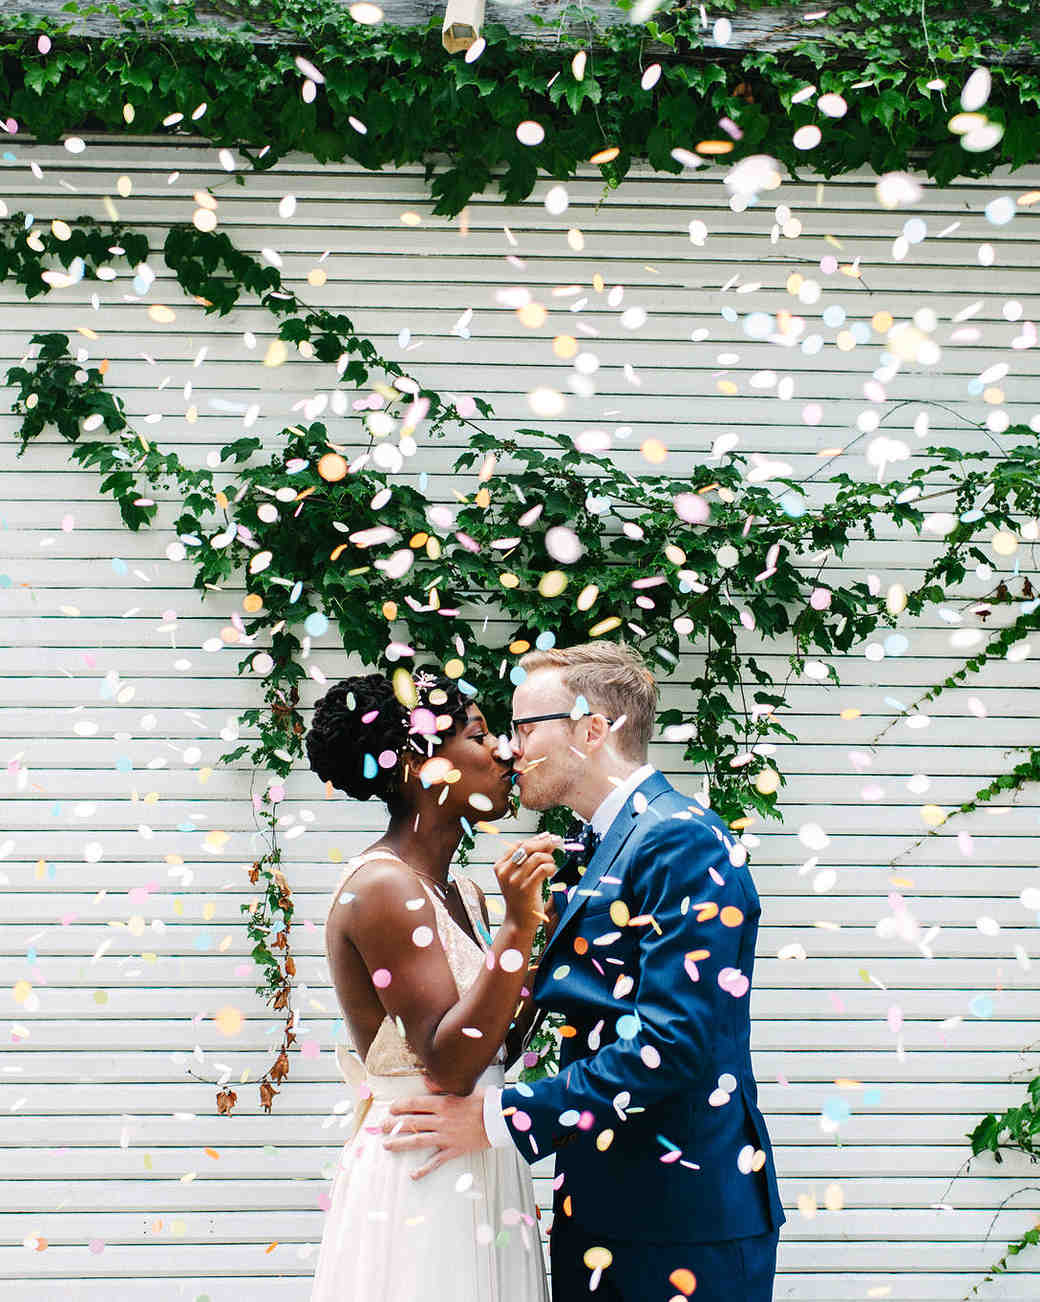 steph tim wedding couple first look kiss confetti